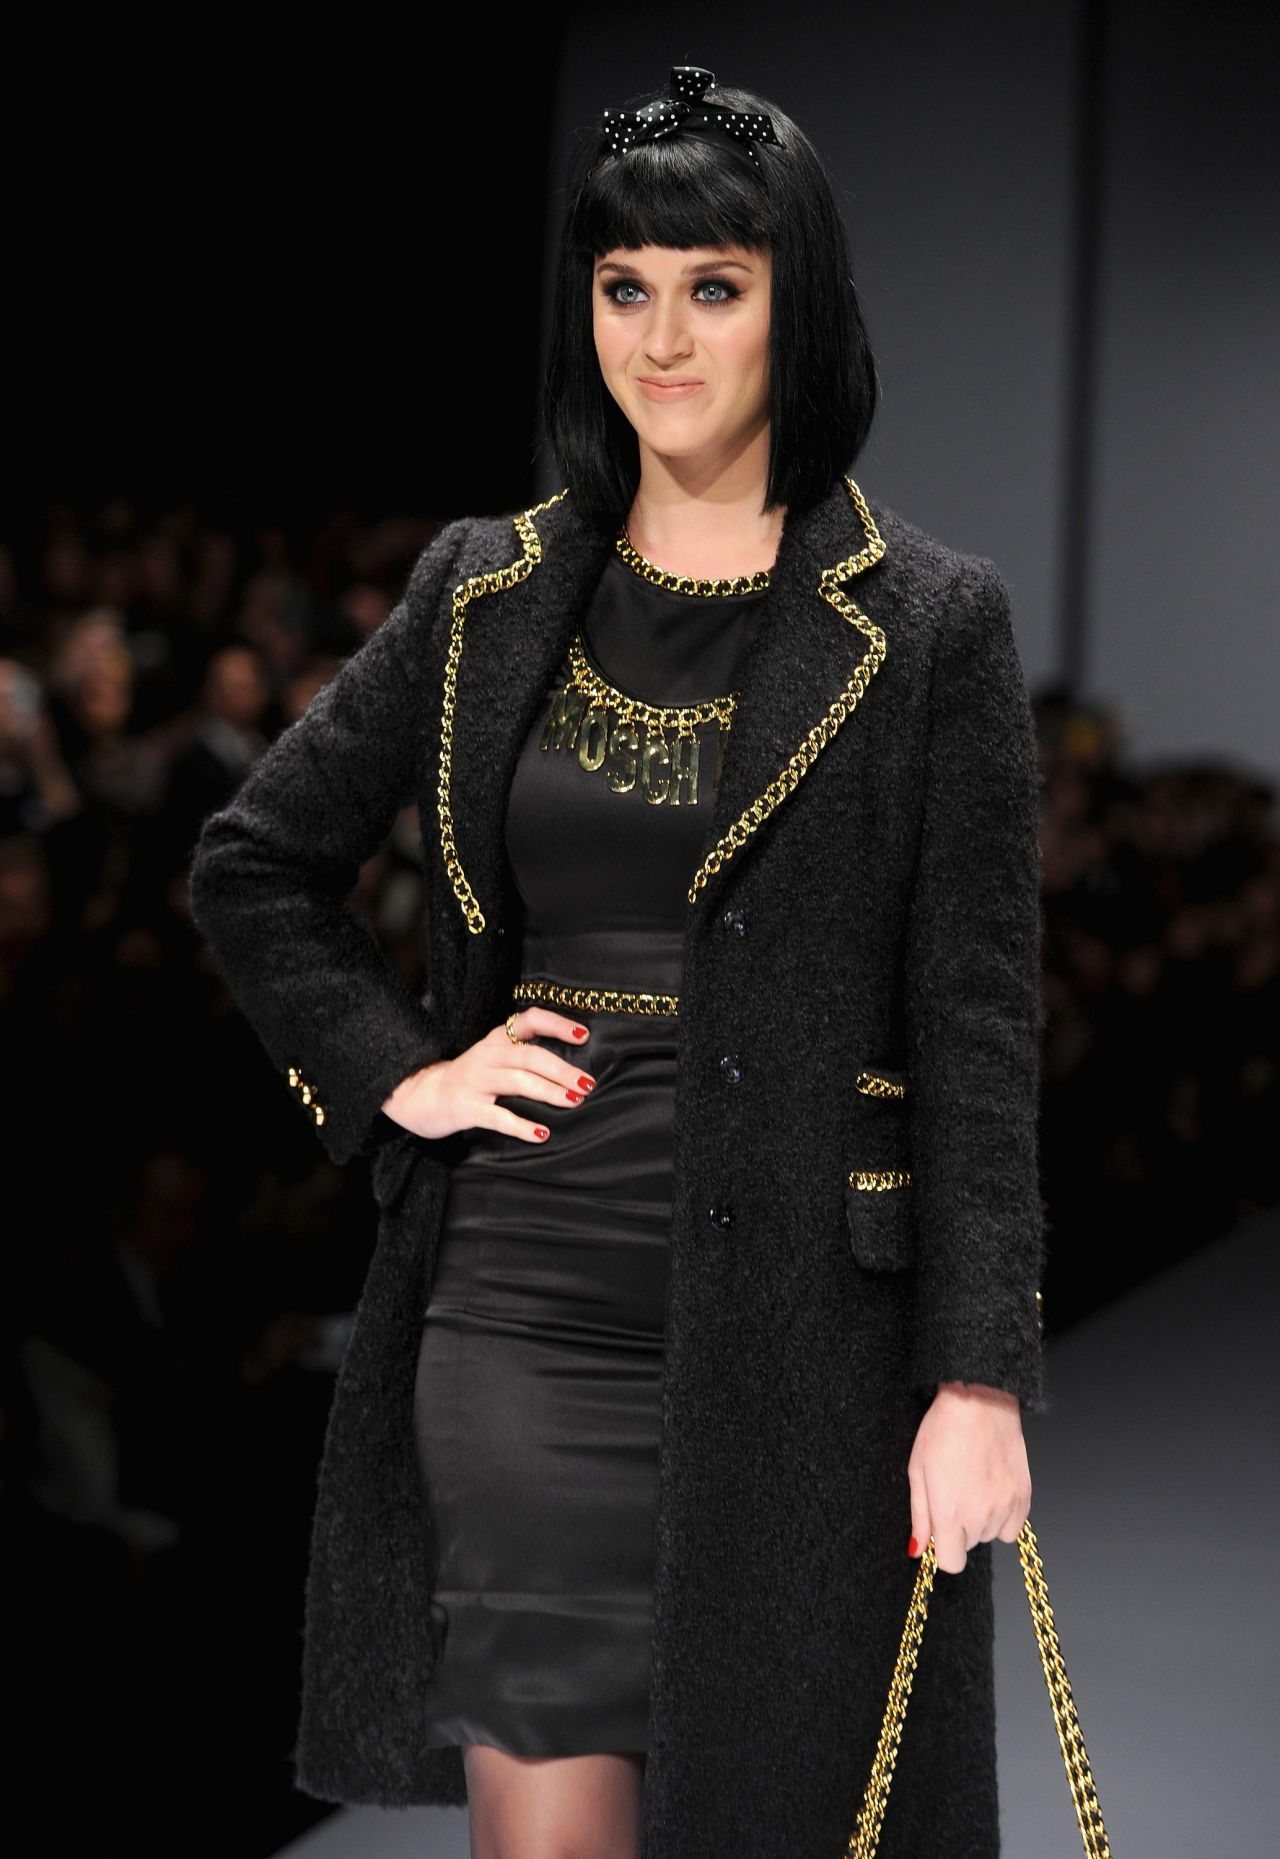 Katy Perry - Moschino Show in Milan, February 2014